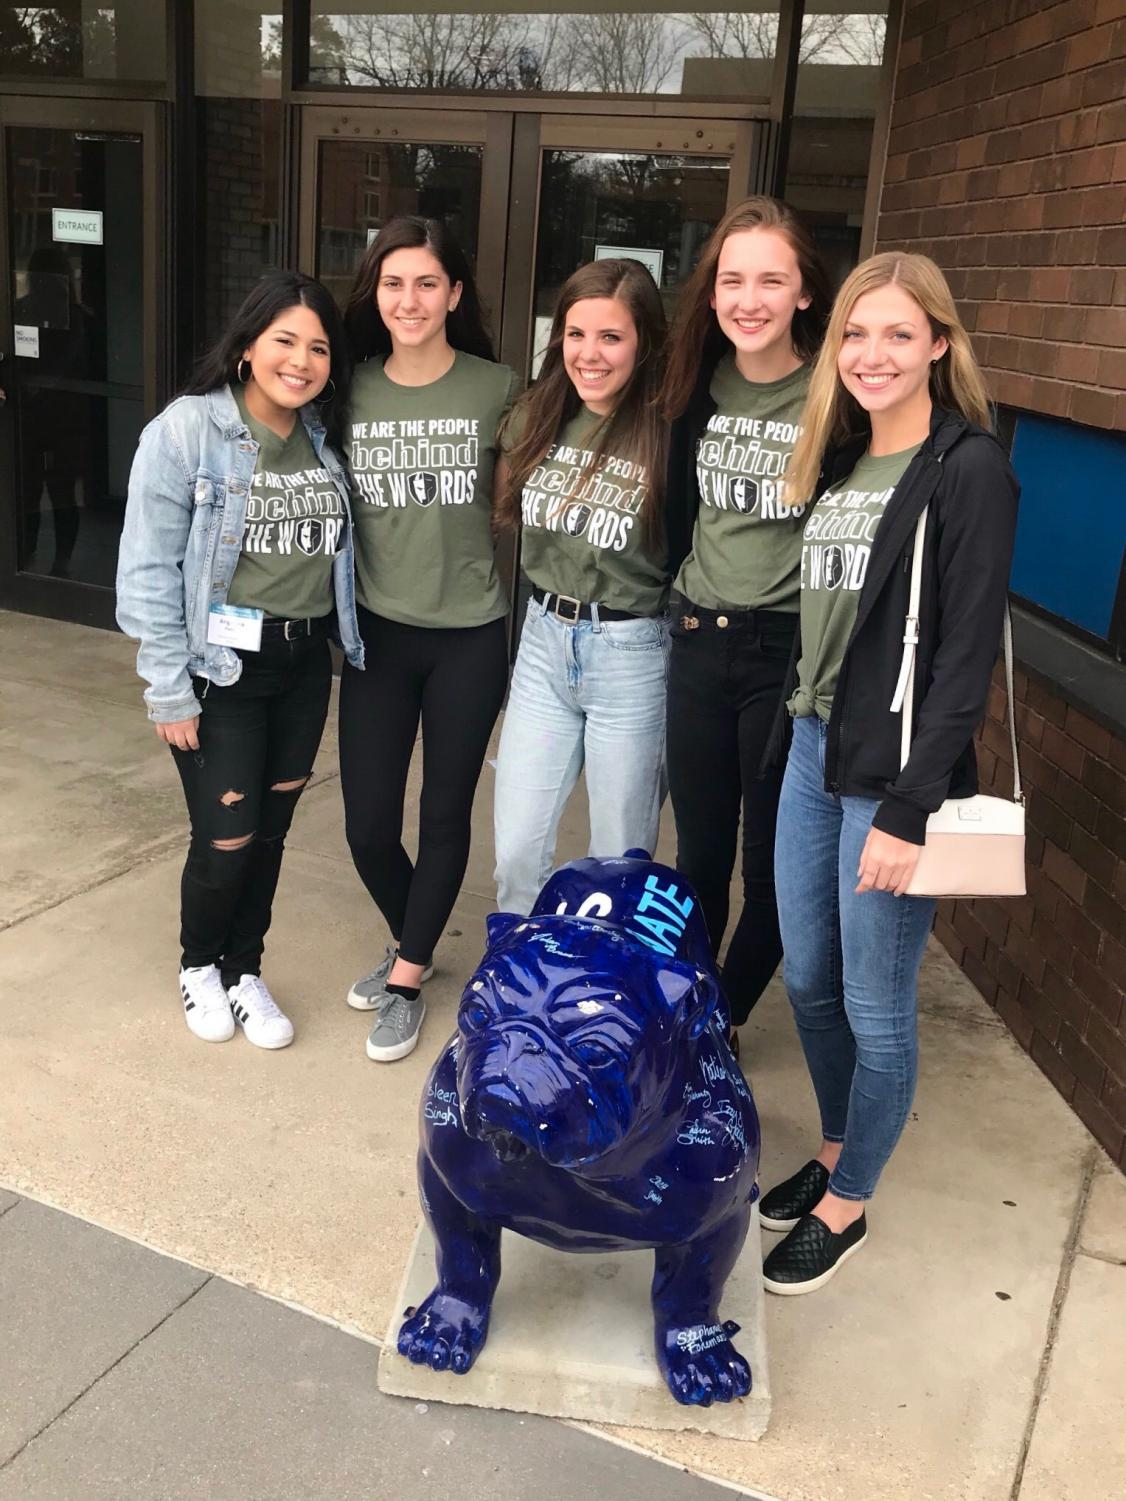 Angela Pandit, Ella Litchfield, Grace Halupnik, Maddy Licea, and Lily Williams pose with Drake University's bulldog outside of the Leadership and Innovation in Journalism Conference.